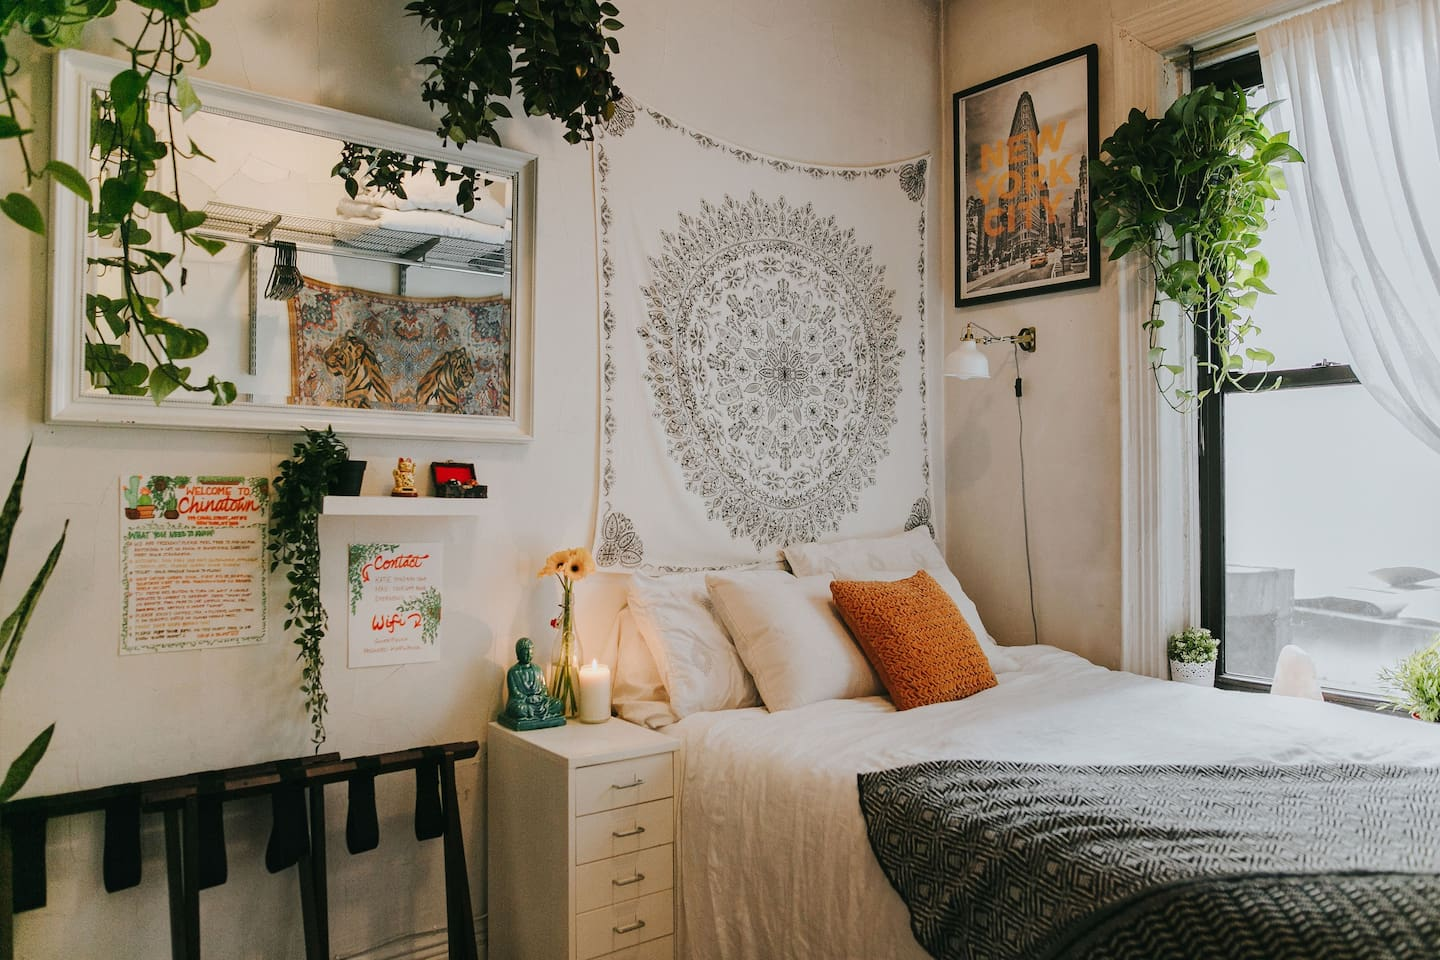 Your room! Our personal tapestries and plants plucked from our favorite local chinatown garden shops.